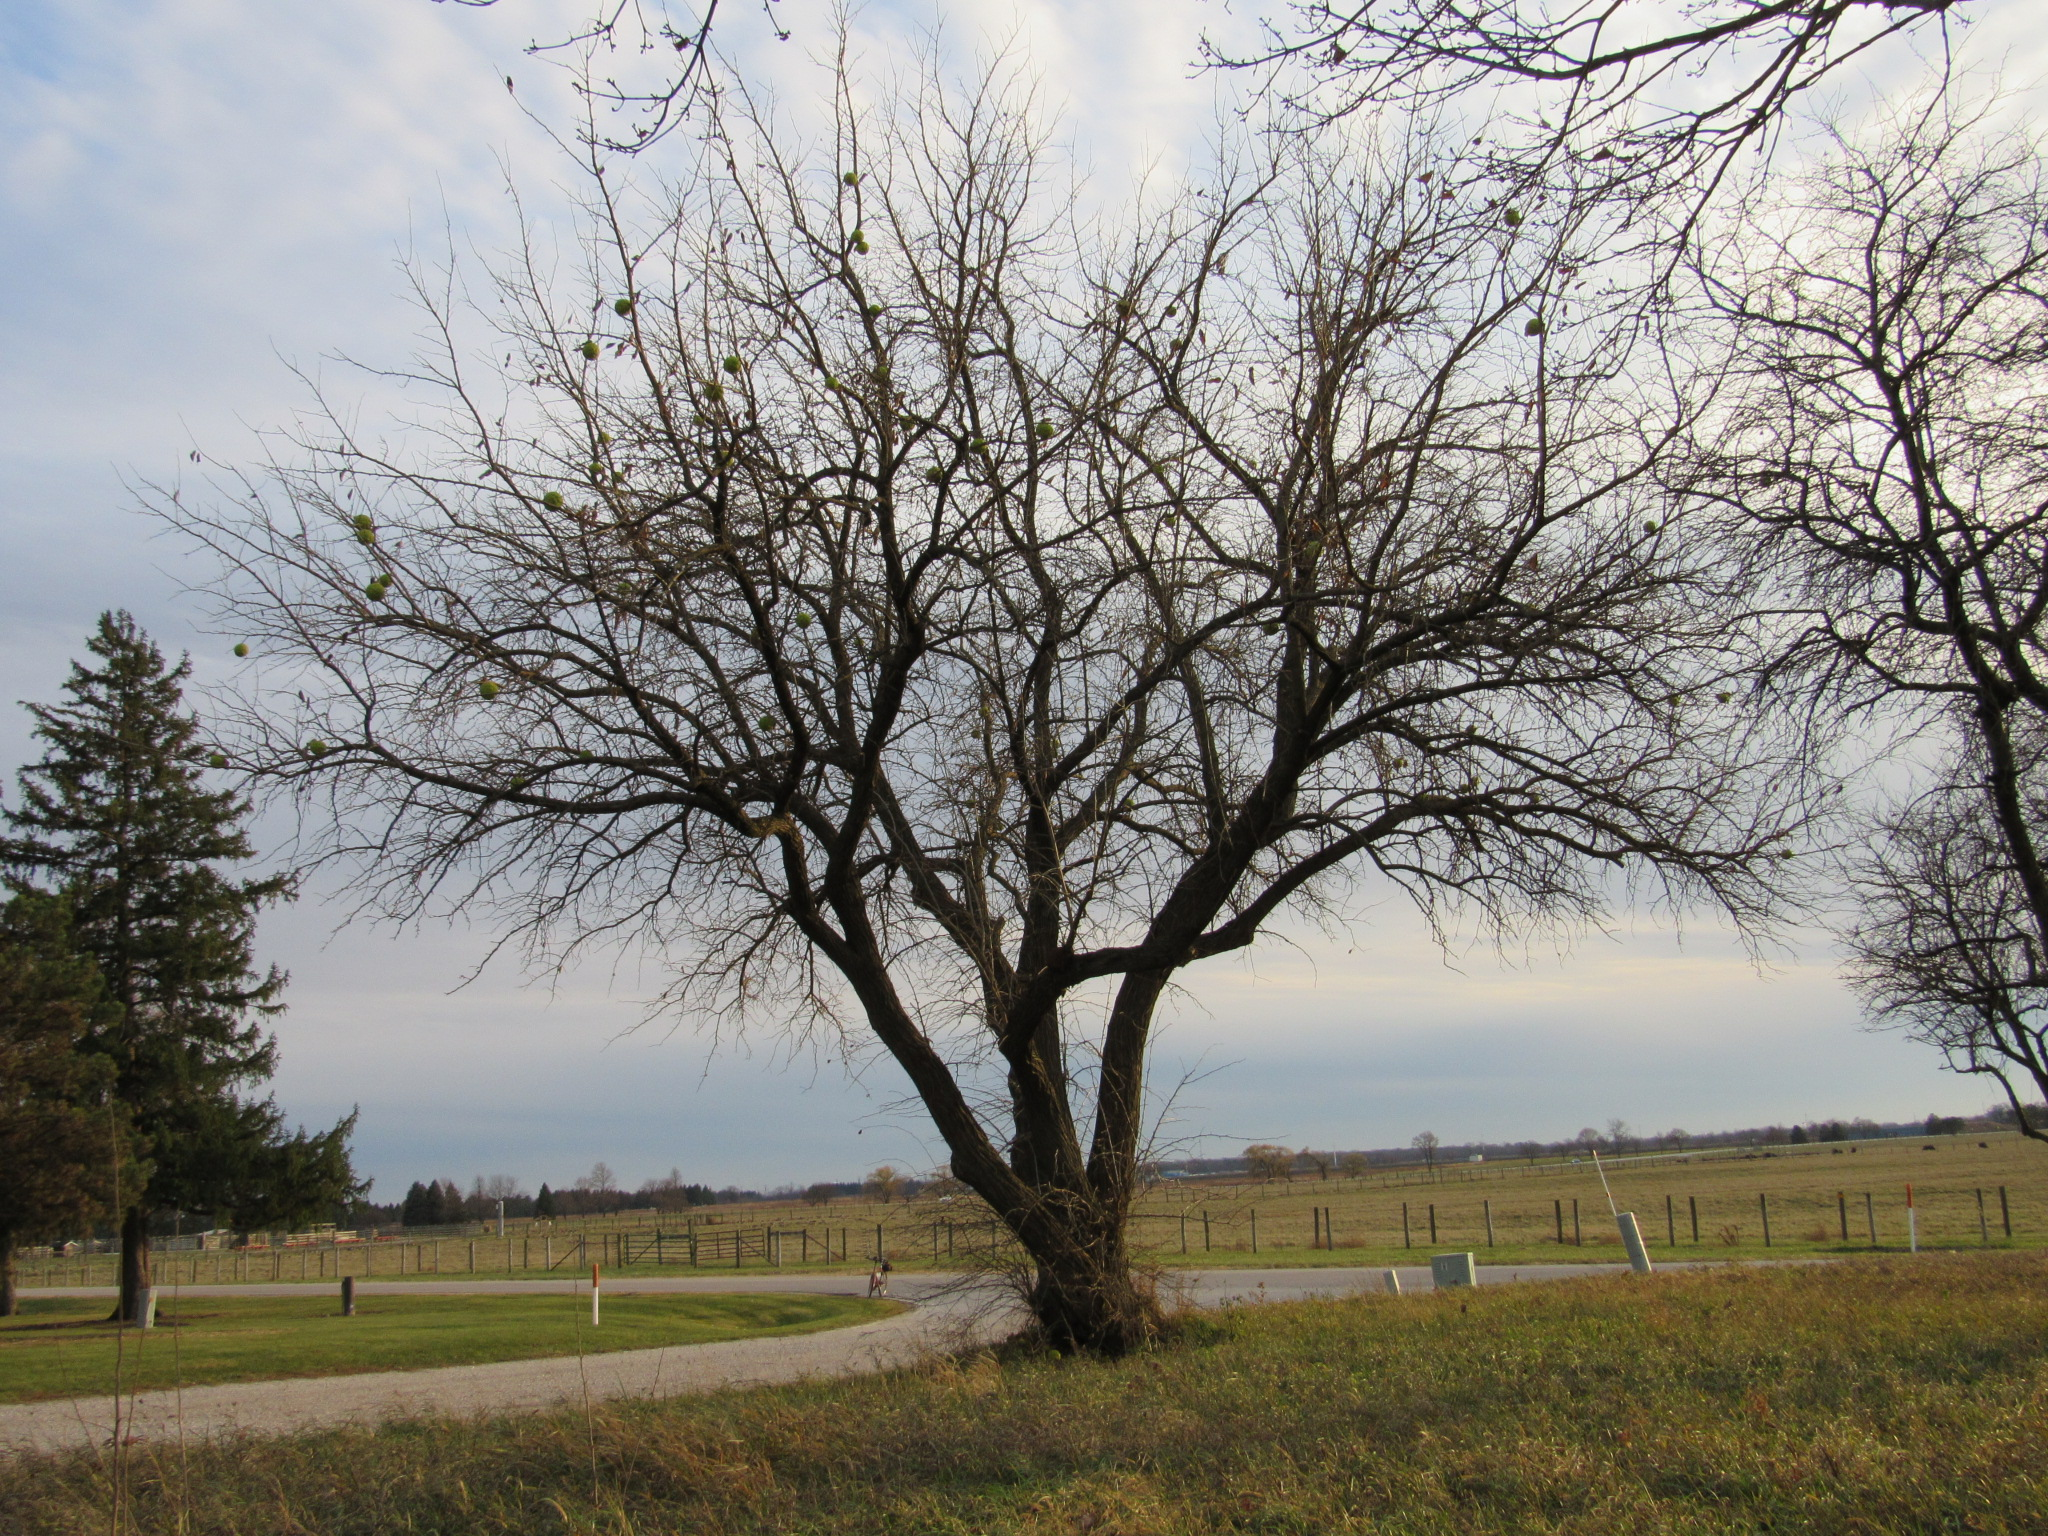 A few osage oranges (<em>Maclura pomifera</em> tree) are still hanging by the Site 50 barn entrance from Batavia Road. nature, landscape, tree, fruit, plant Photo: Luciano Elementi